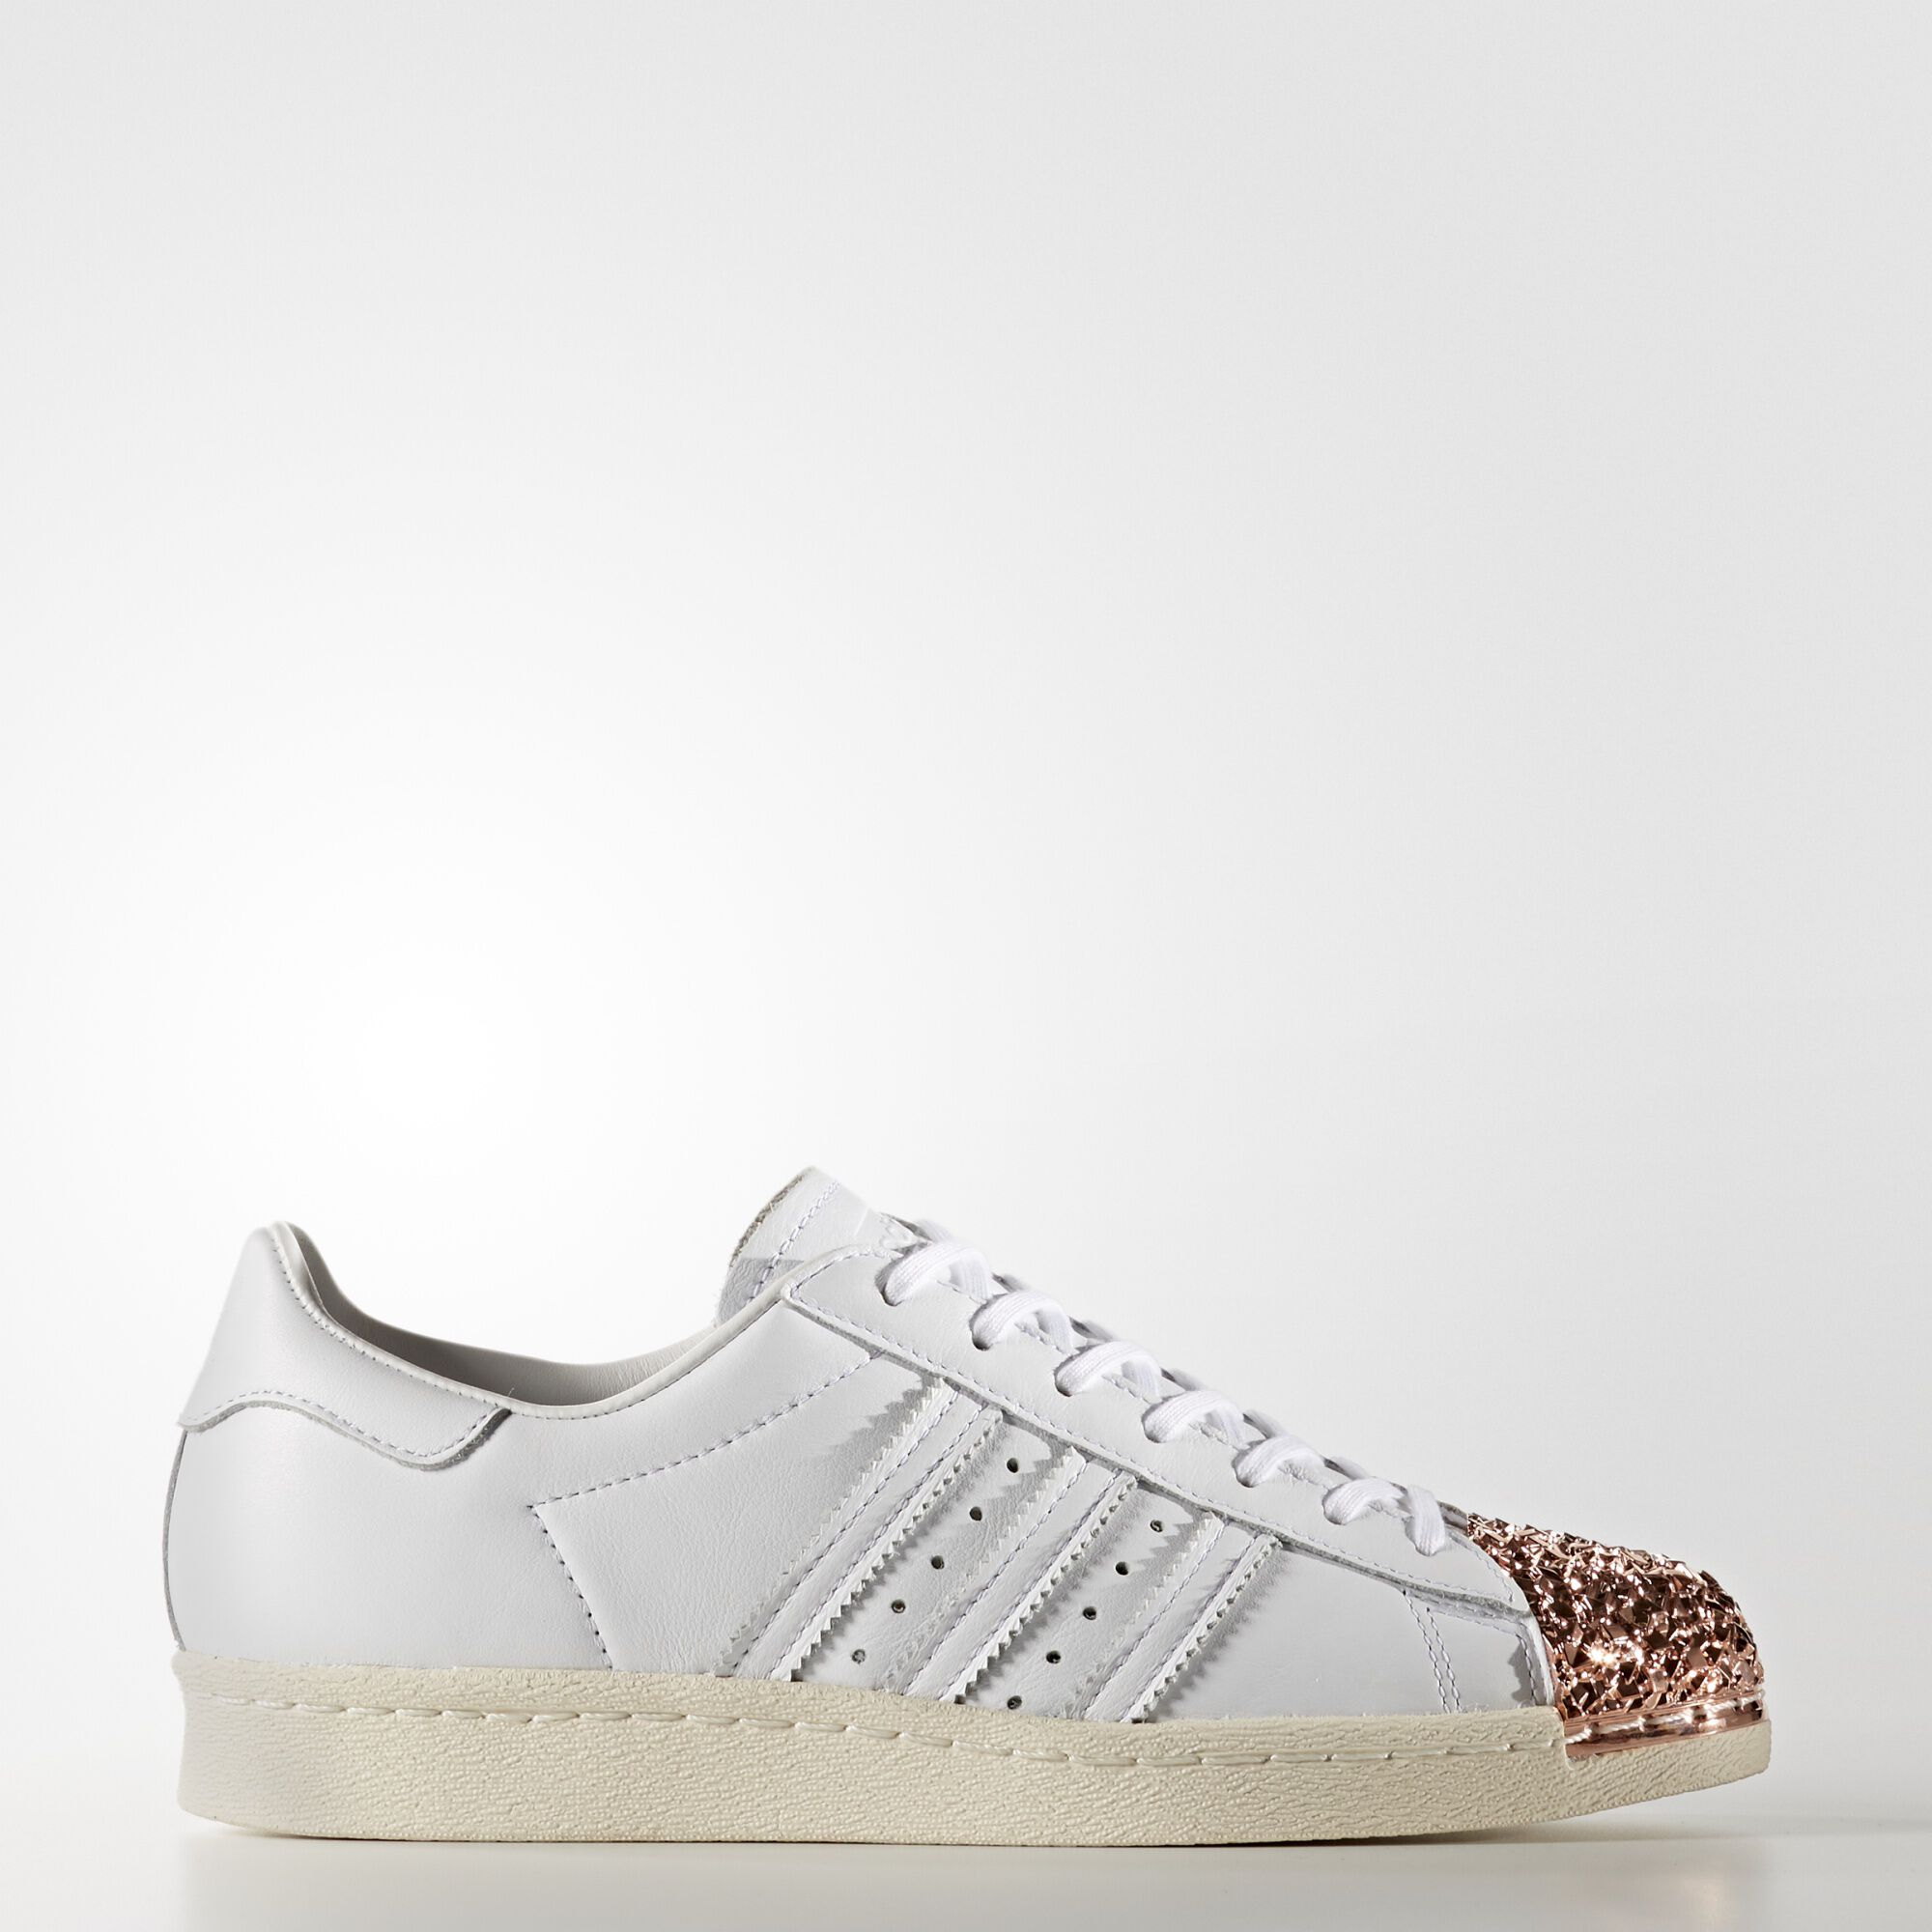 Adidas Superstar Lachs